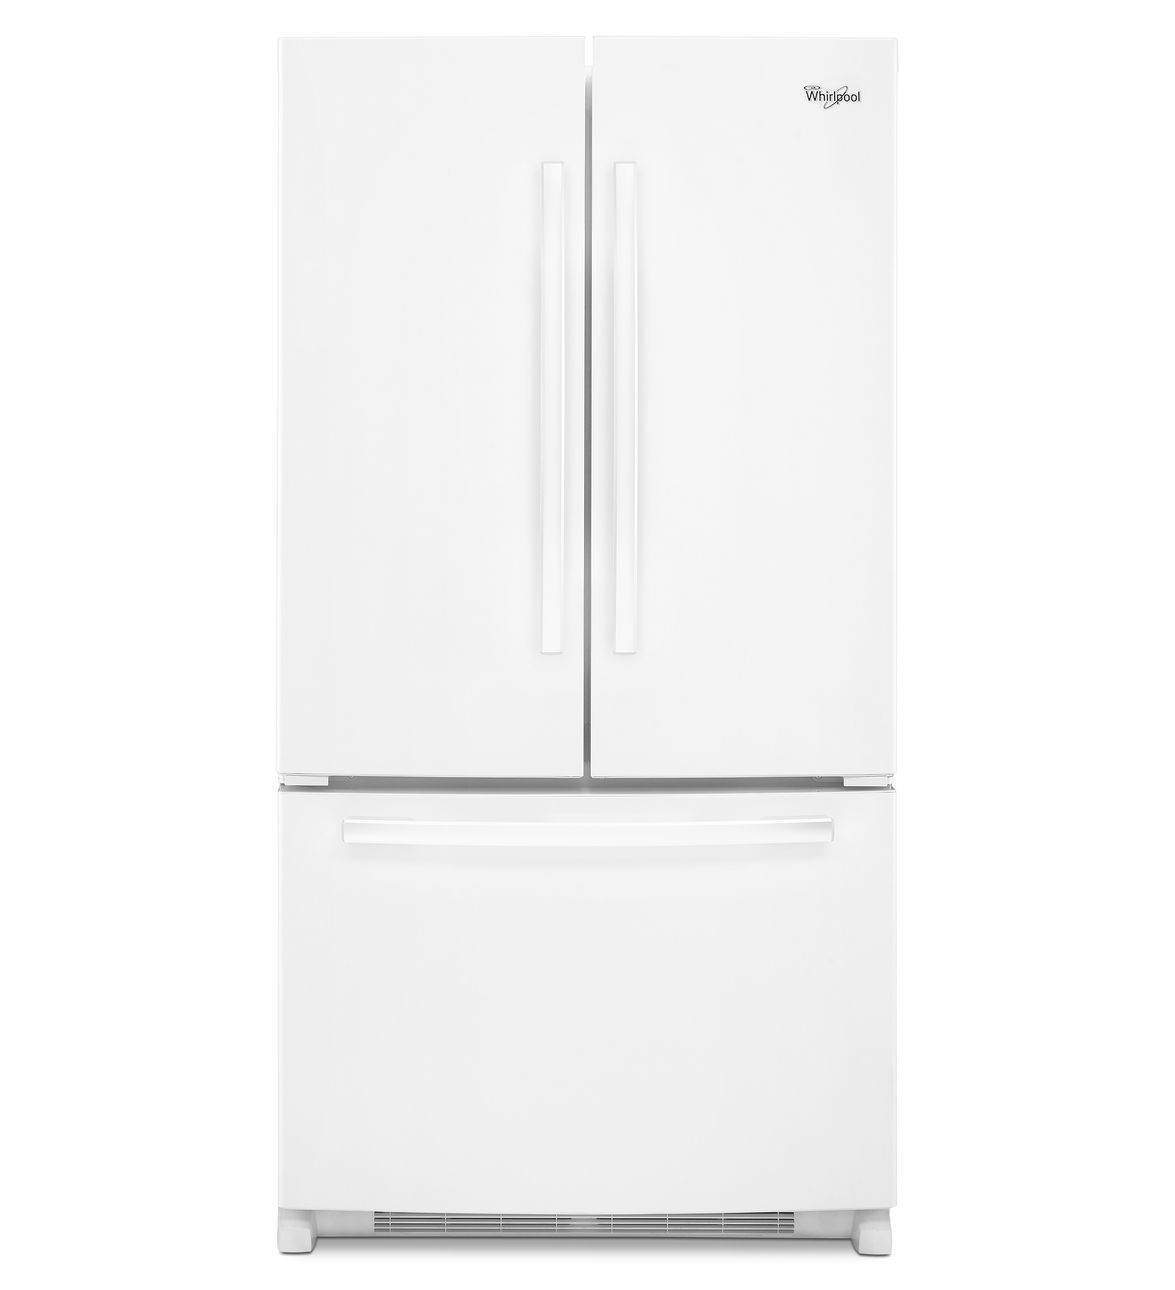 36 Inch Wide Counter Depth French Door Refrigerator With Temperature